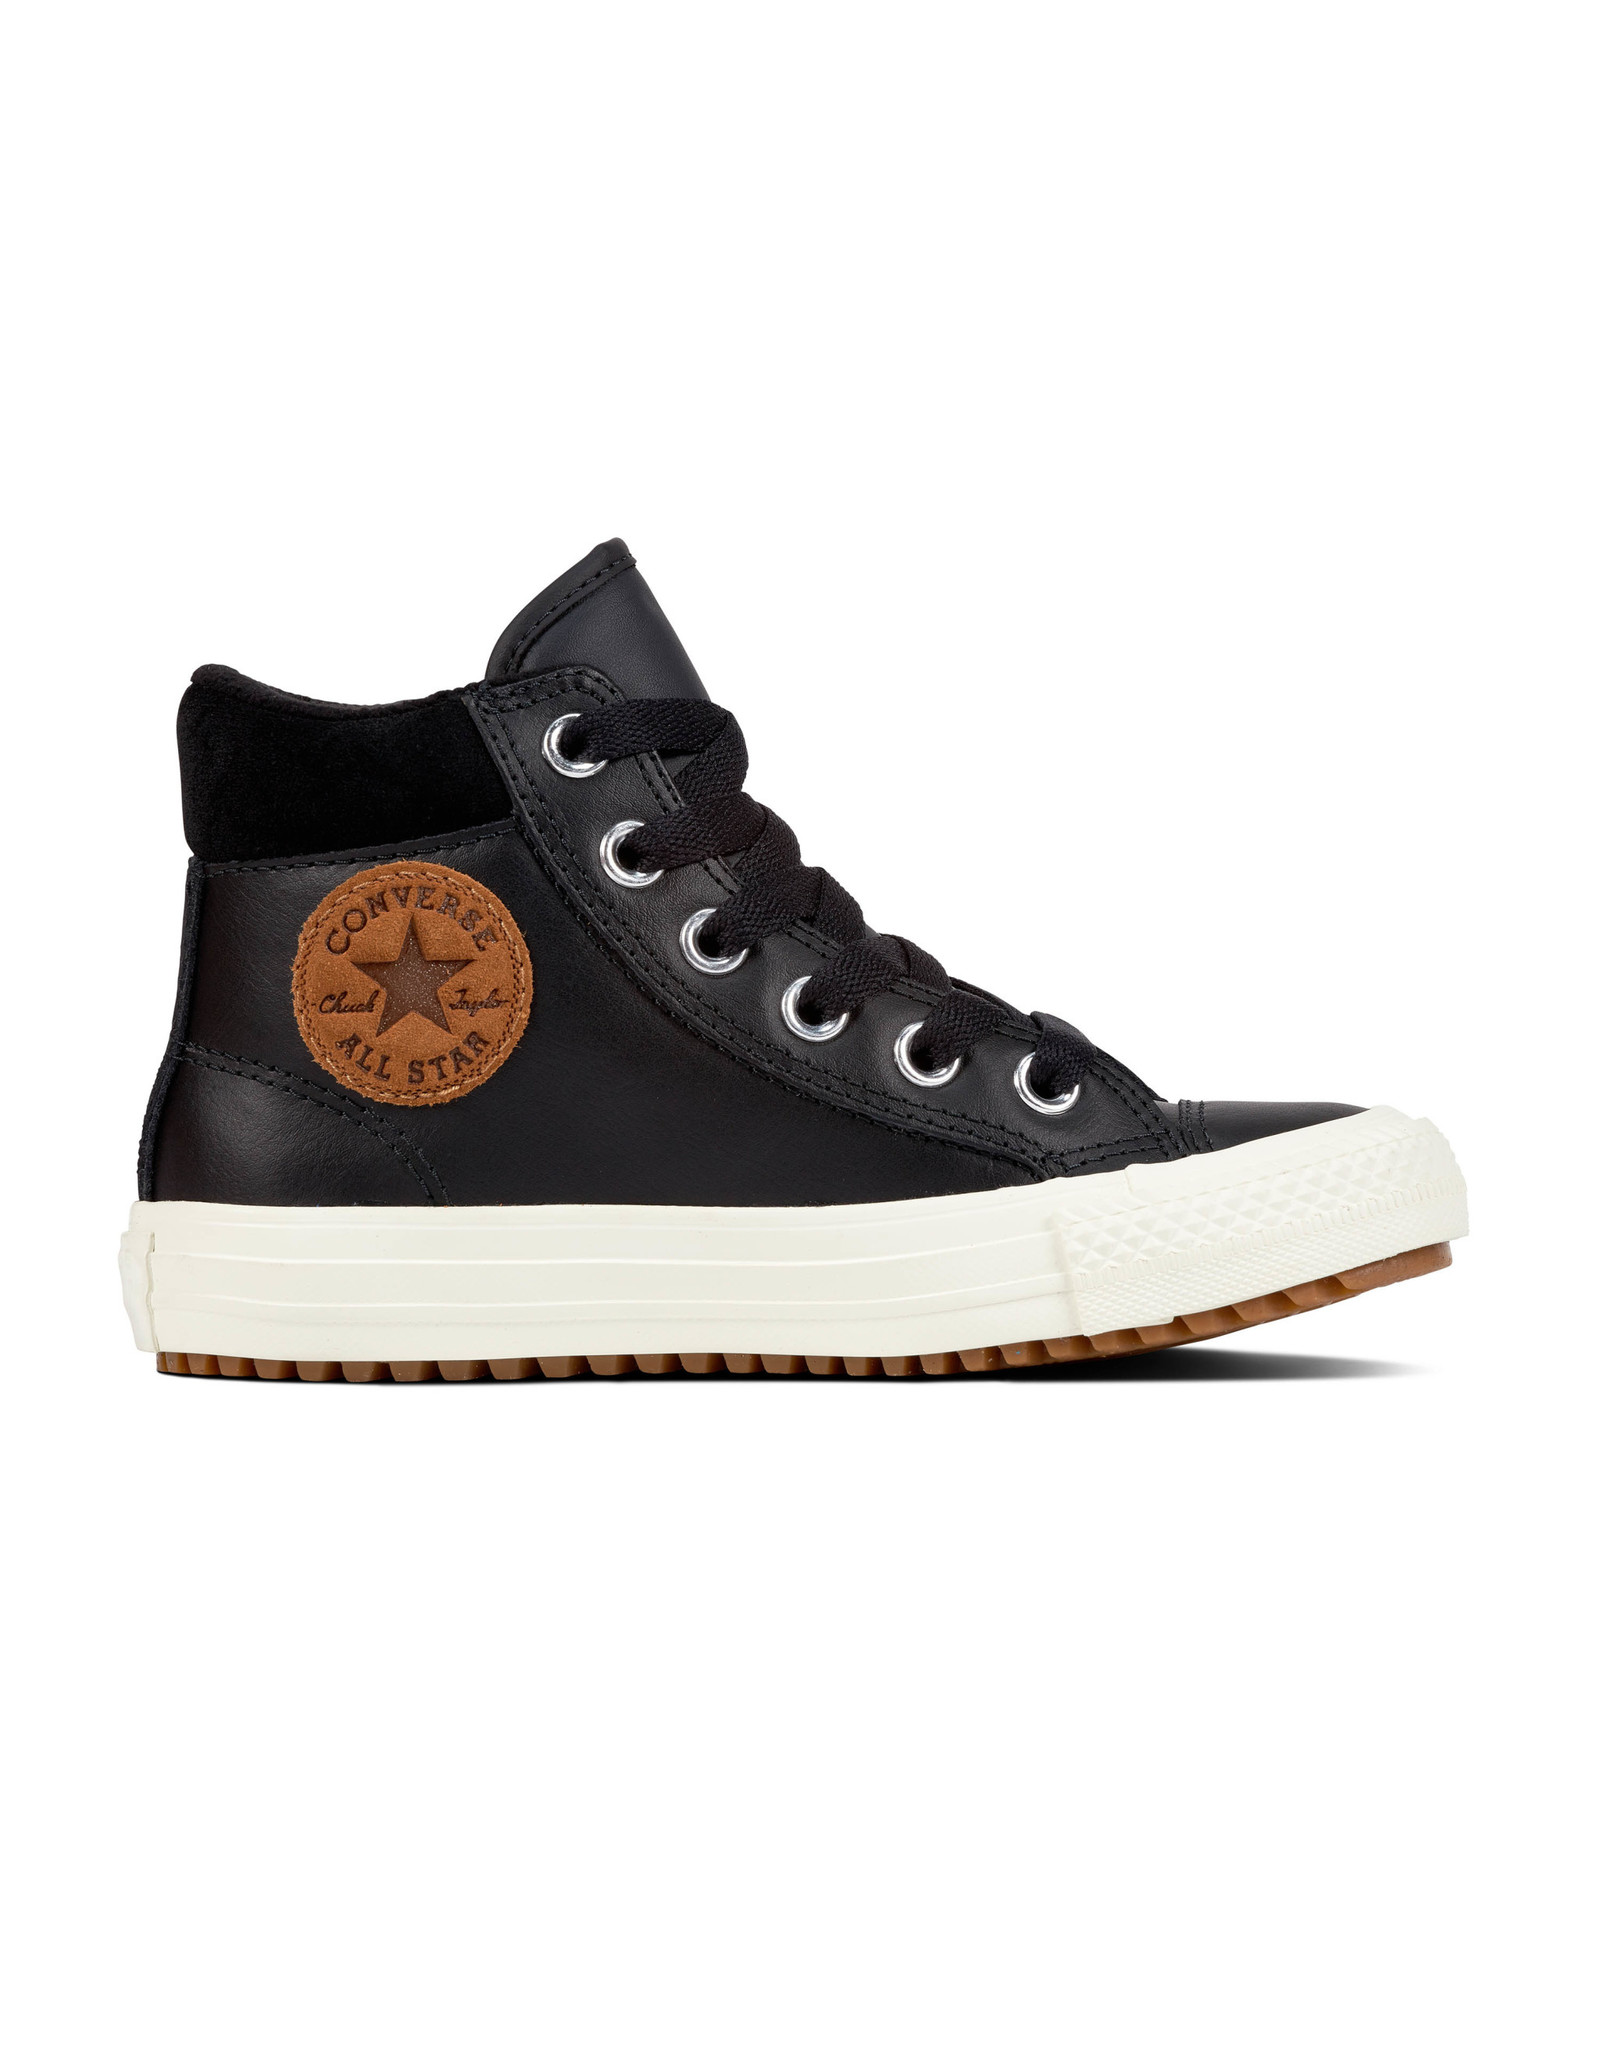 CONVERSE CHUCK TAYLOR PC BOOT HI BLACK/BURNT CARAMEL CAWB-661906C